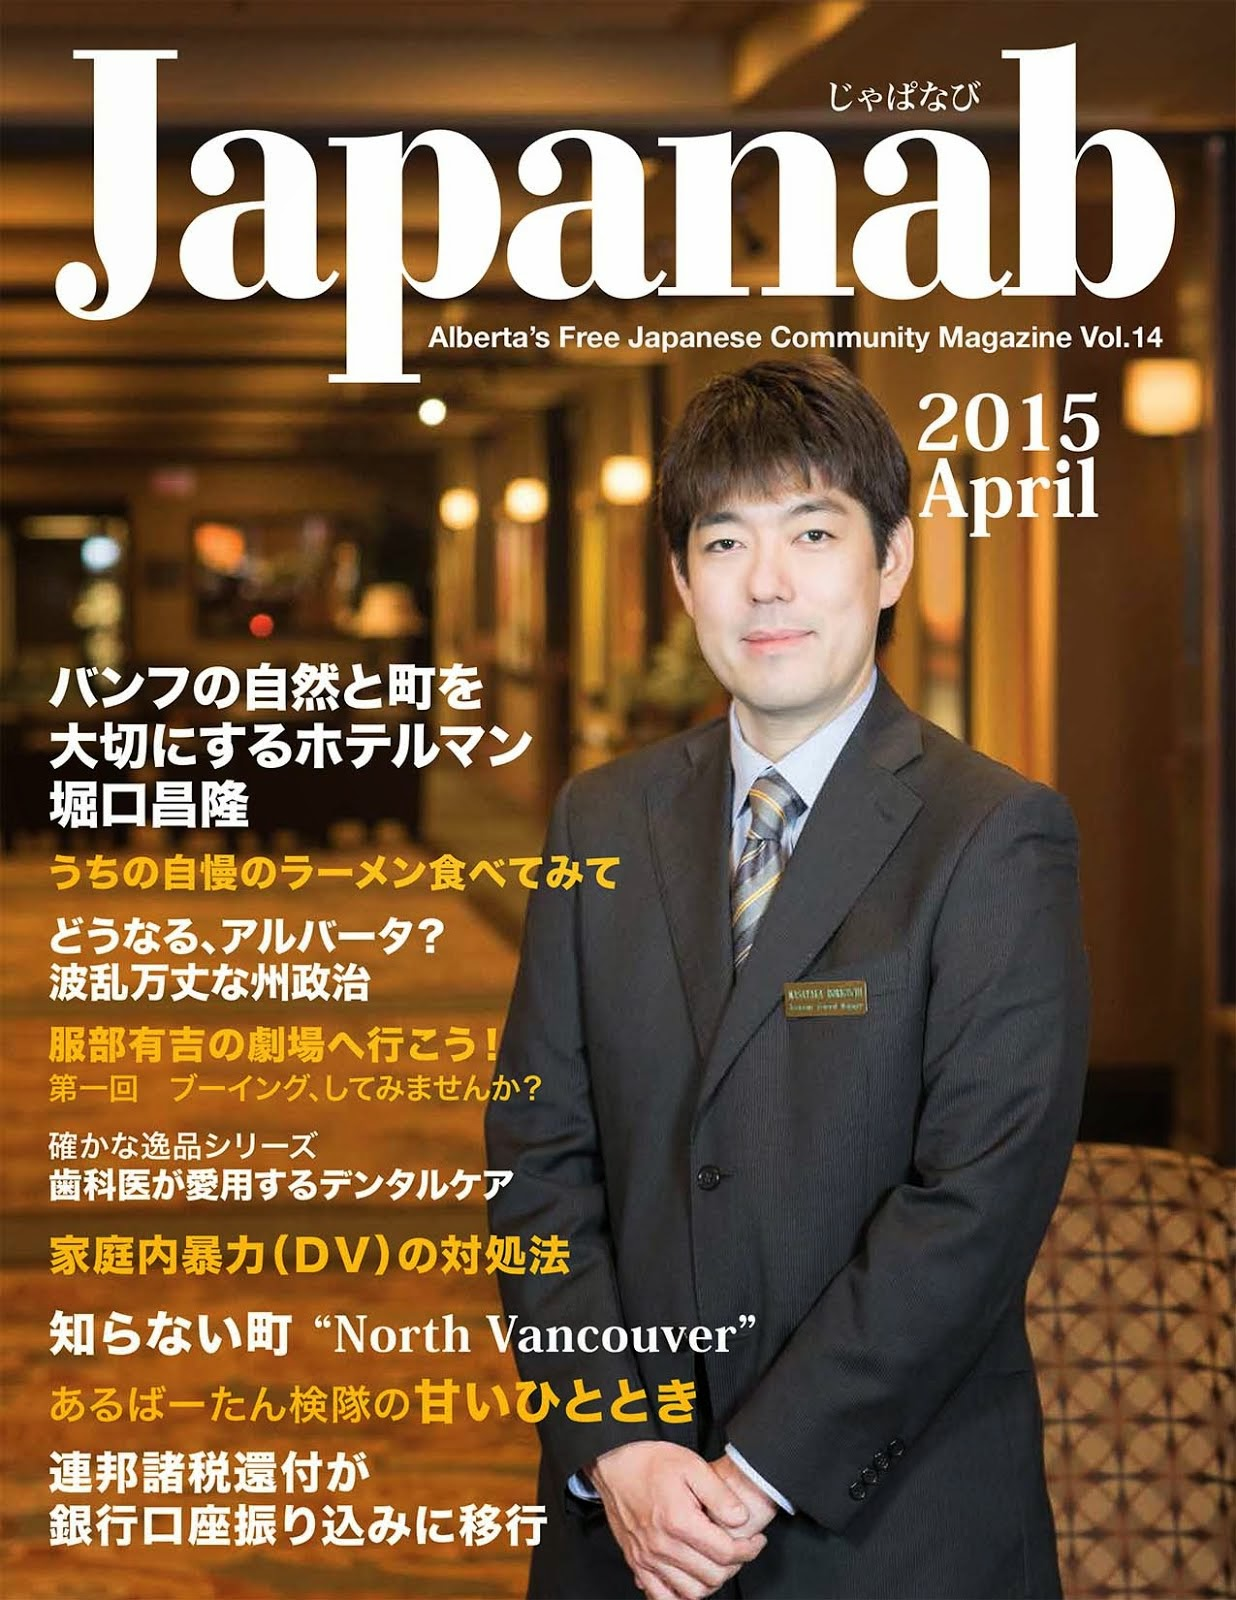 Japanab Vol. 14 - 2015 April